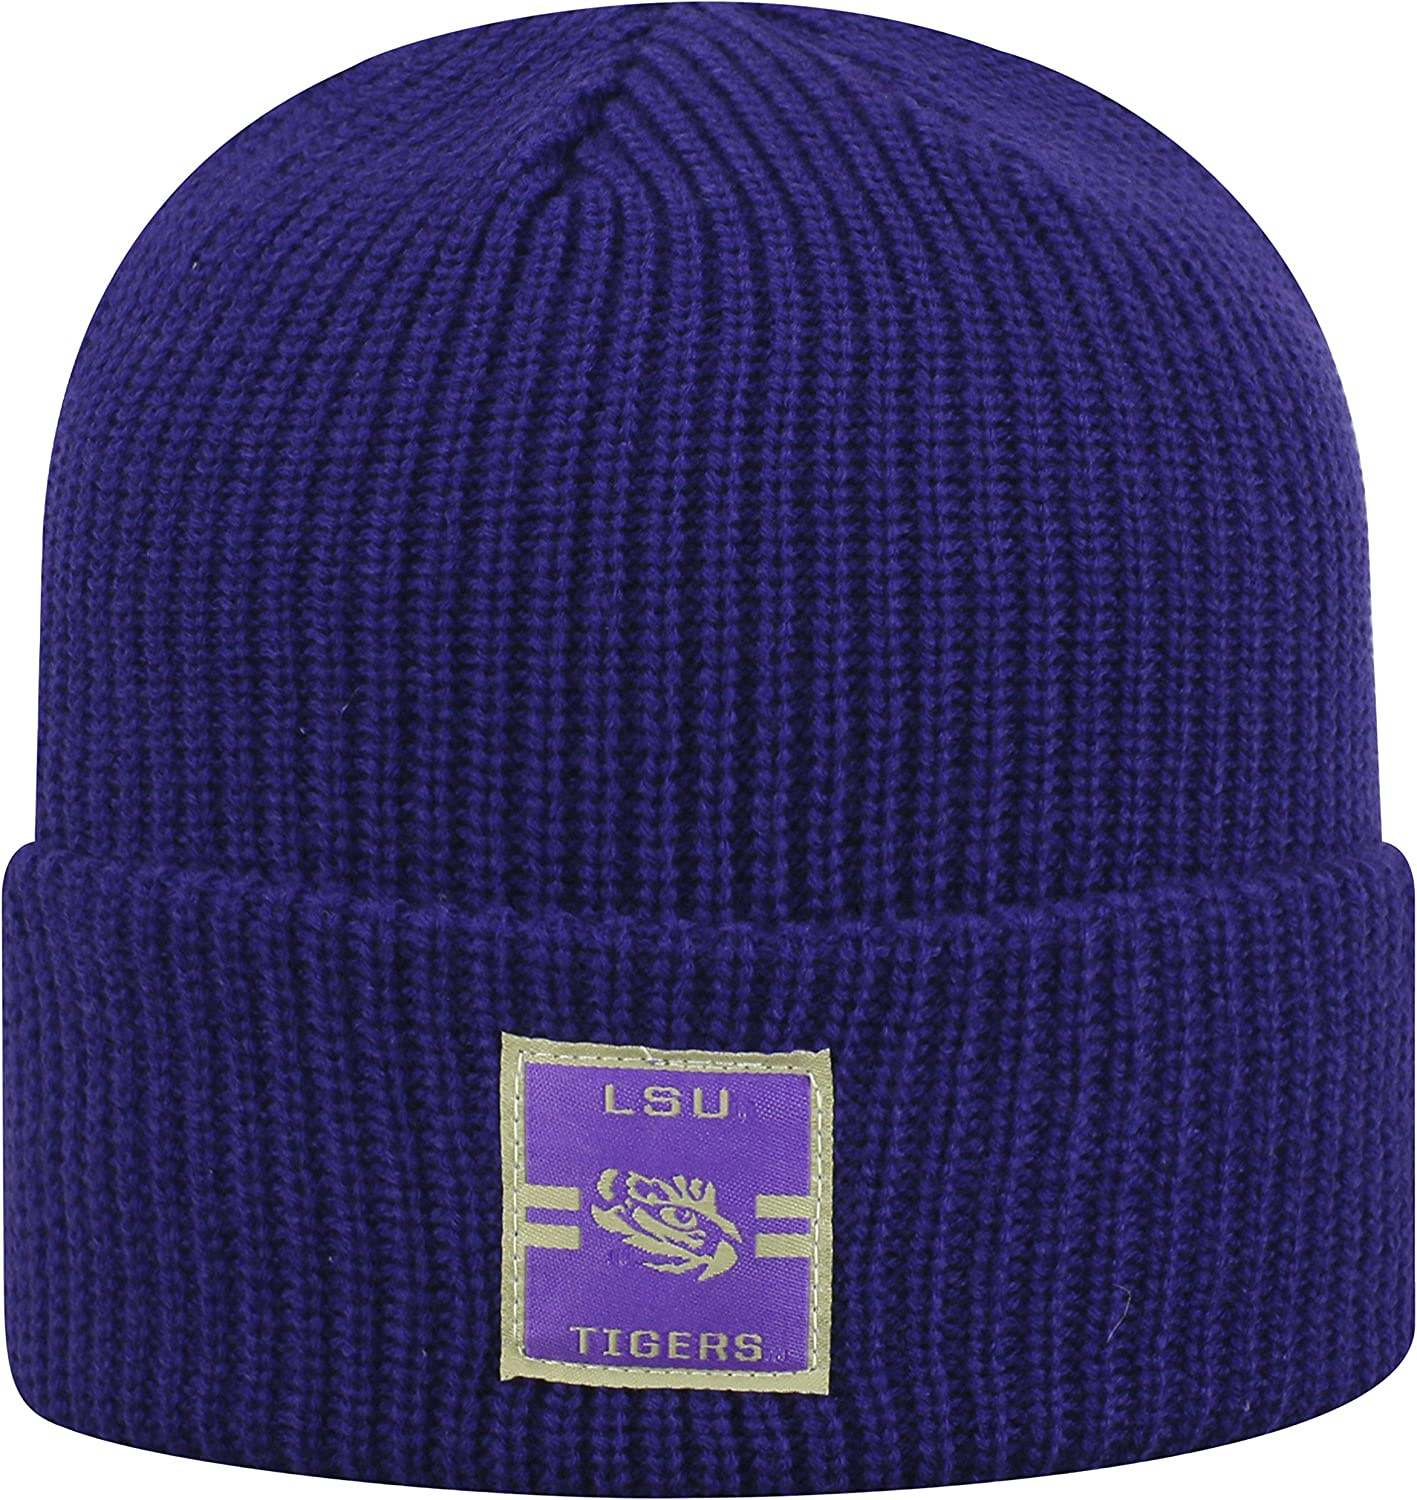 Top of the World LSU Tigers Official NCAA Cuffed Knit Incline Stocking Stretch Sock Hat Cap Beanie 483672